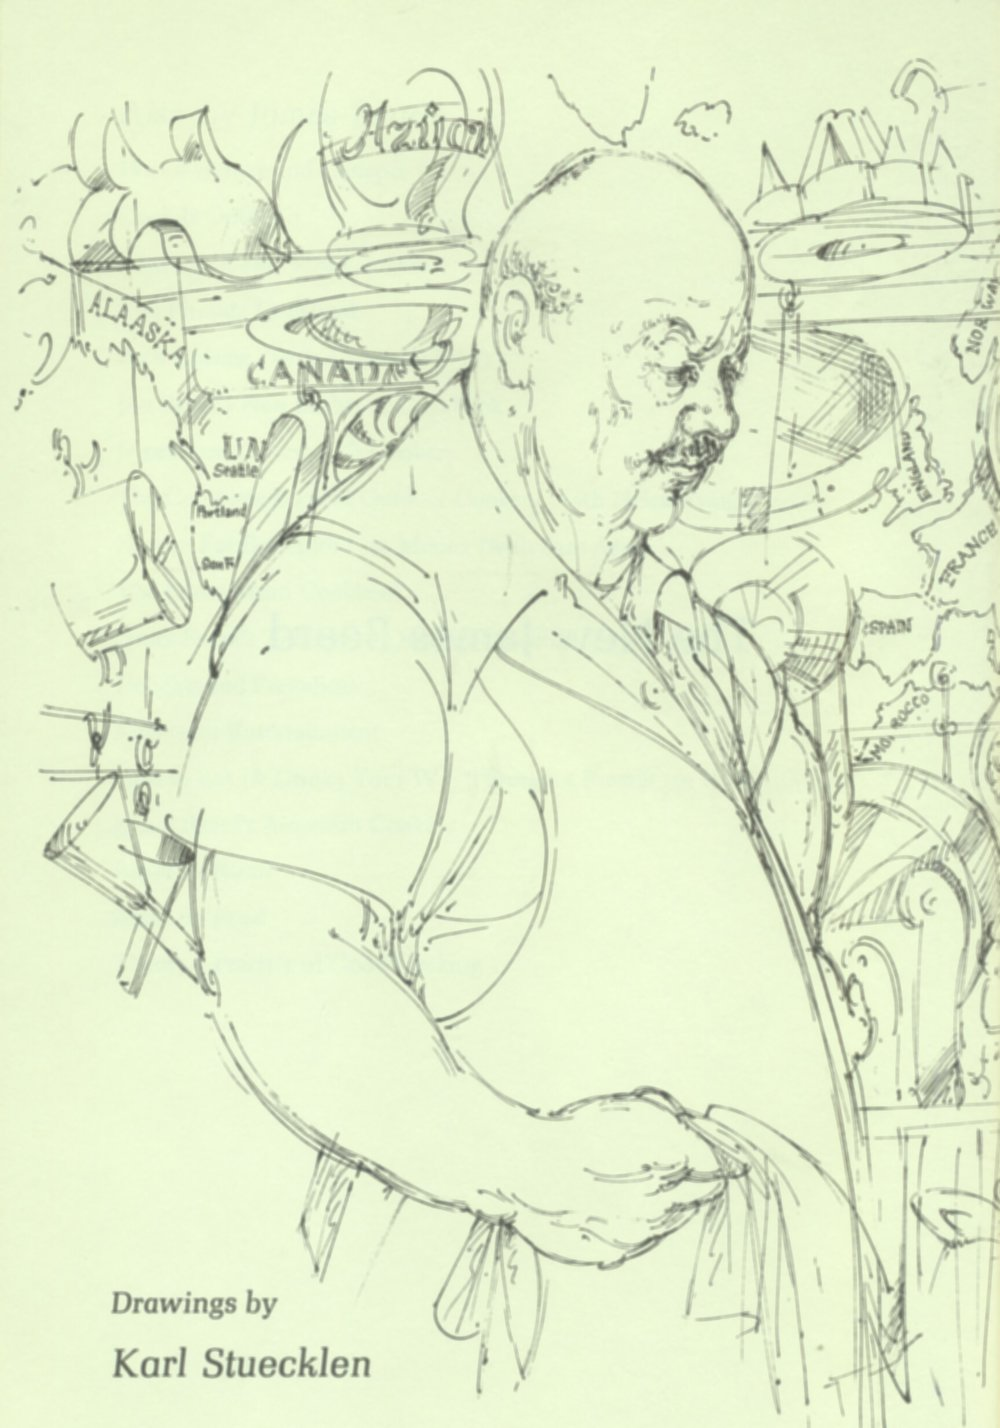 Sketch of James Beard from the title page of The New James Beard, 1981, by Karl Stuecklen